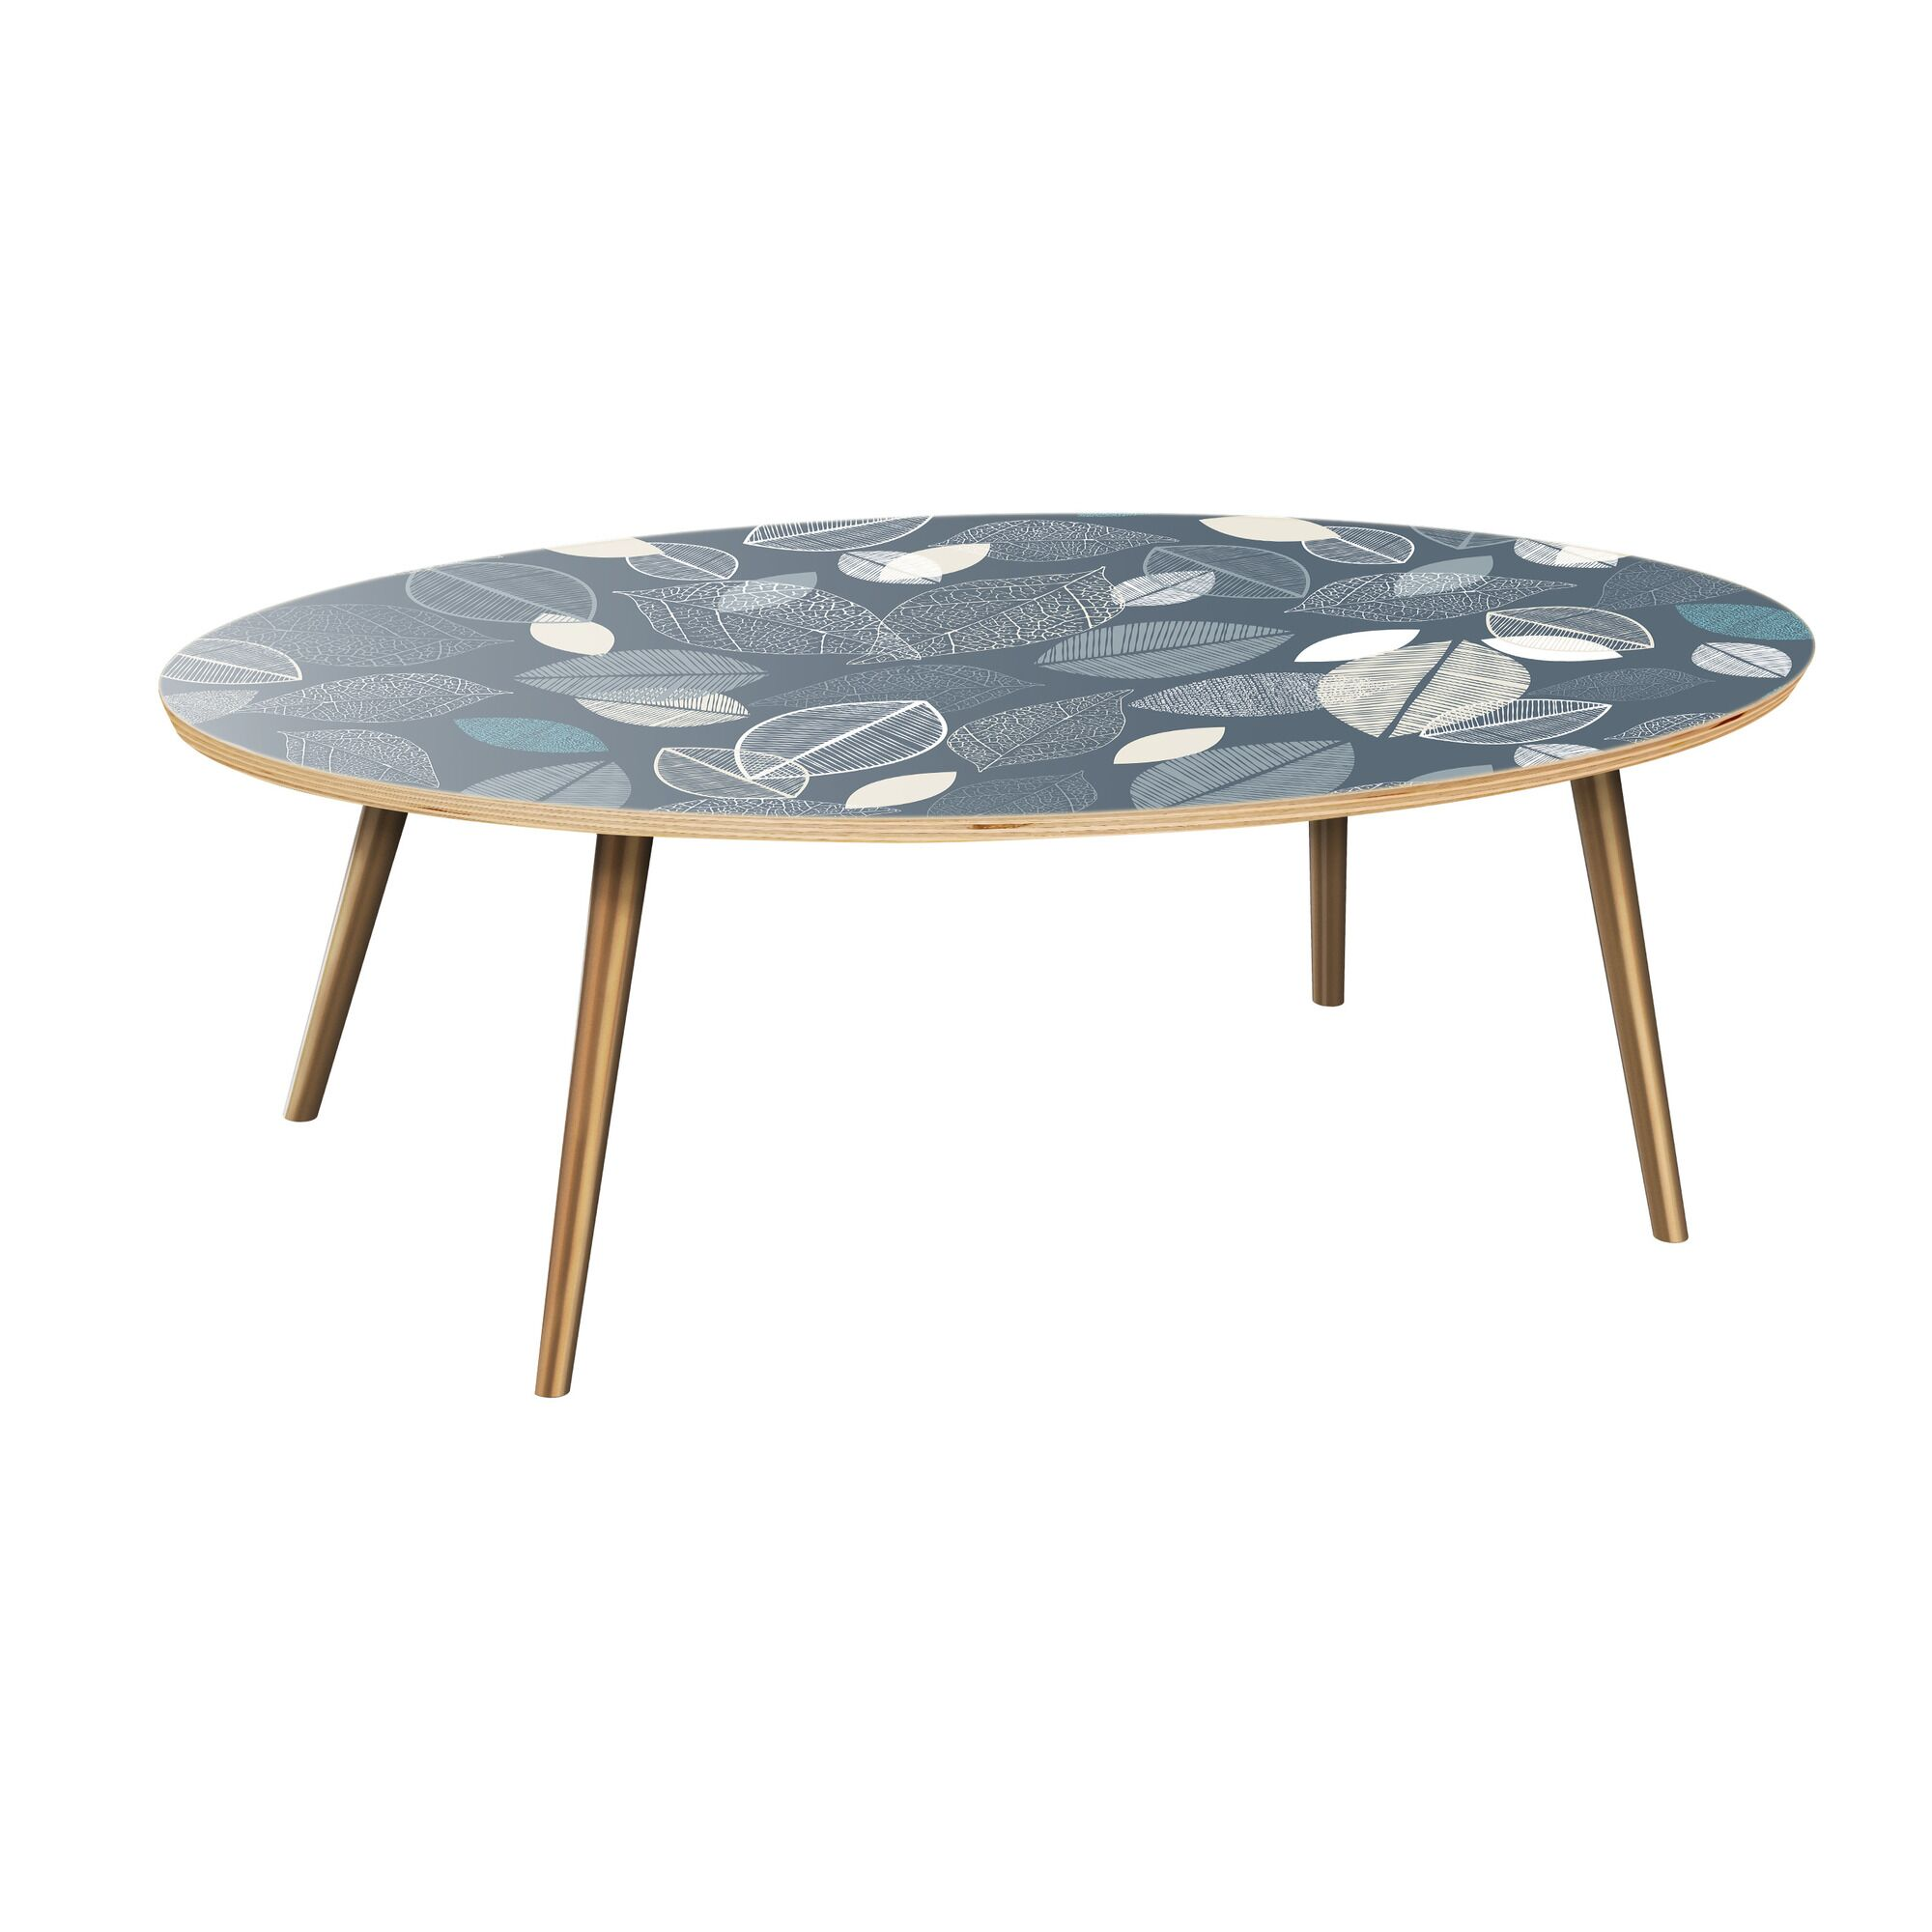 Kirstin Coffee Table Table Top Boarder Color: Natural, Table Base Color: Brass, Table Top Color: Green/Brown